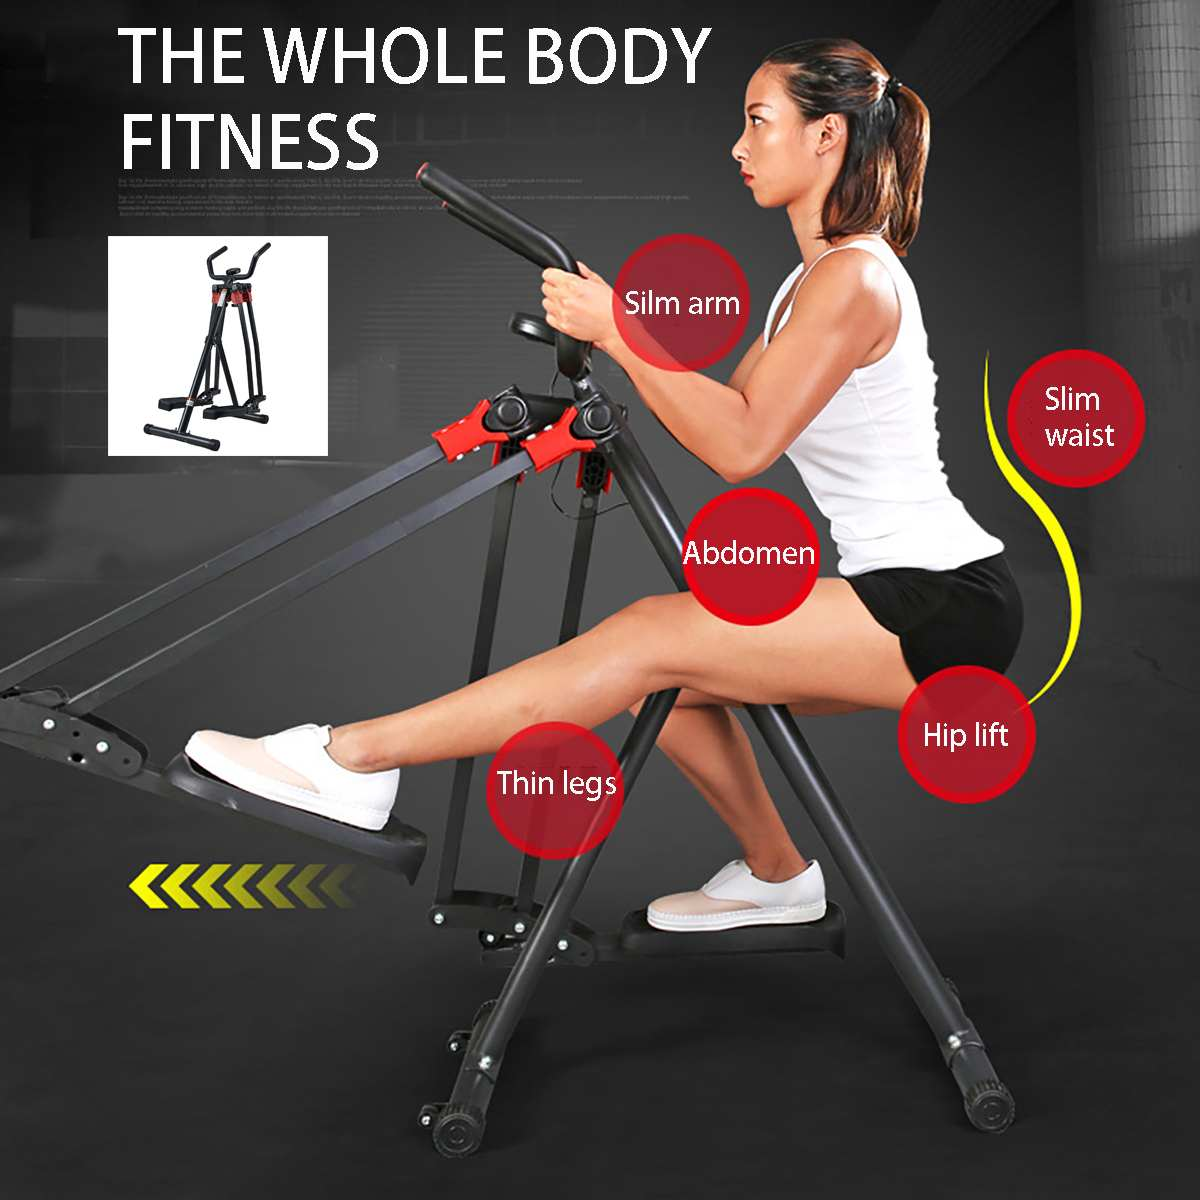 Fitness Workout Exercise Stepper Cardio Machine Indoor Cycling Bikes LCD Display Soft Handle Bar Pedal Bike Home Gym Equipment